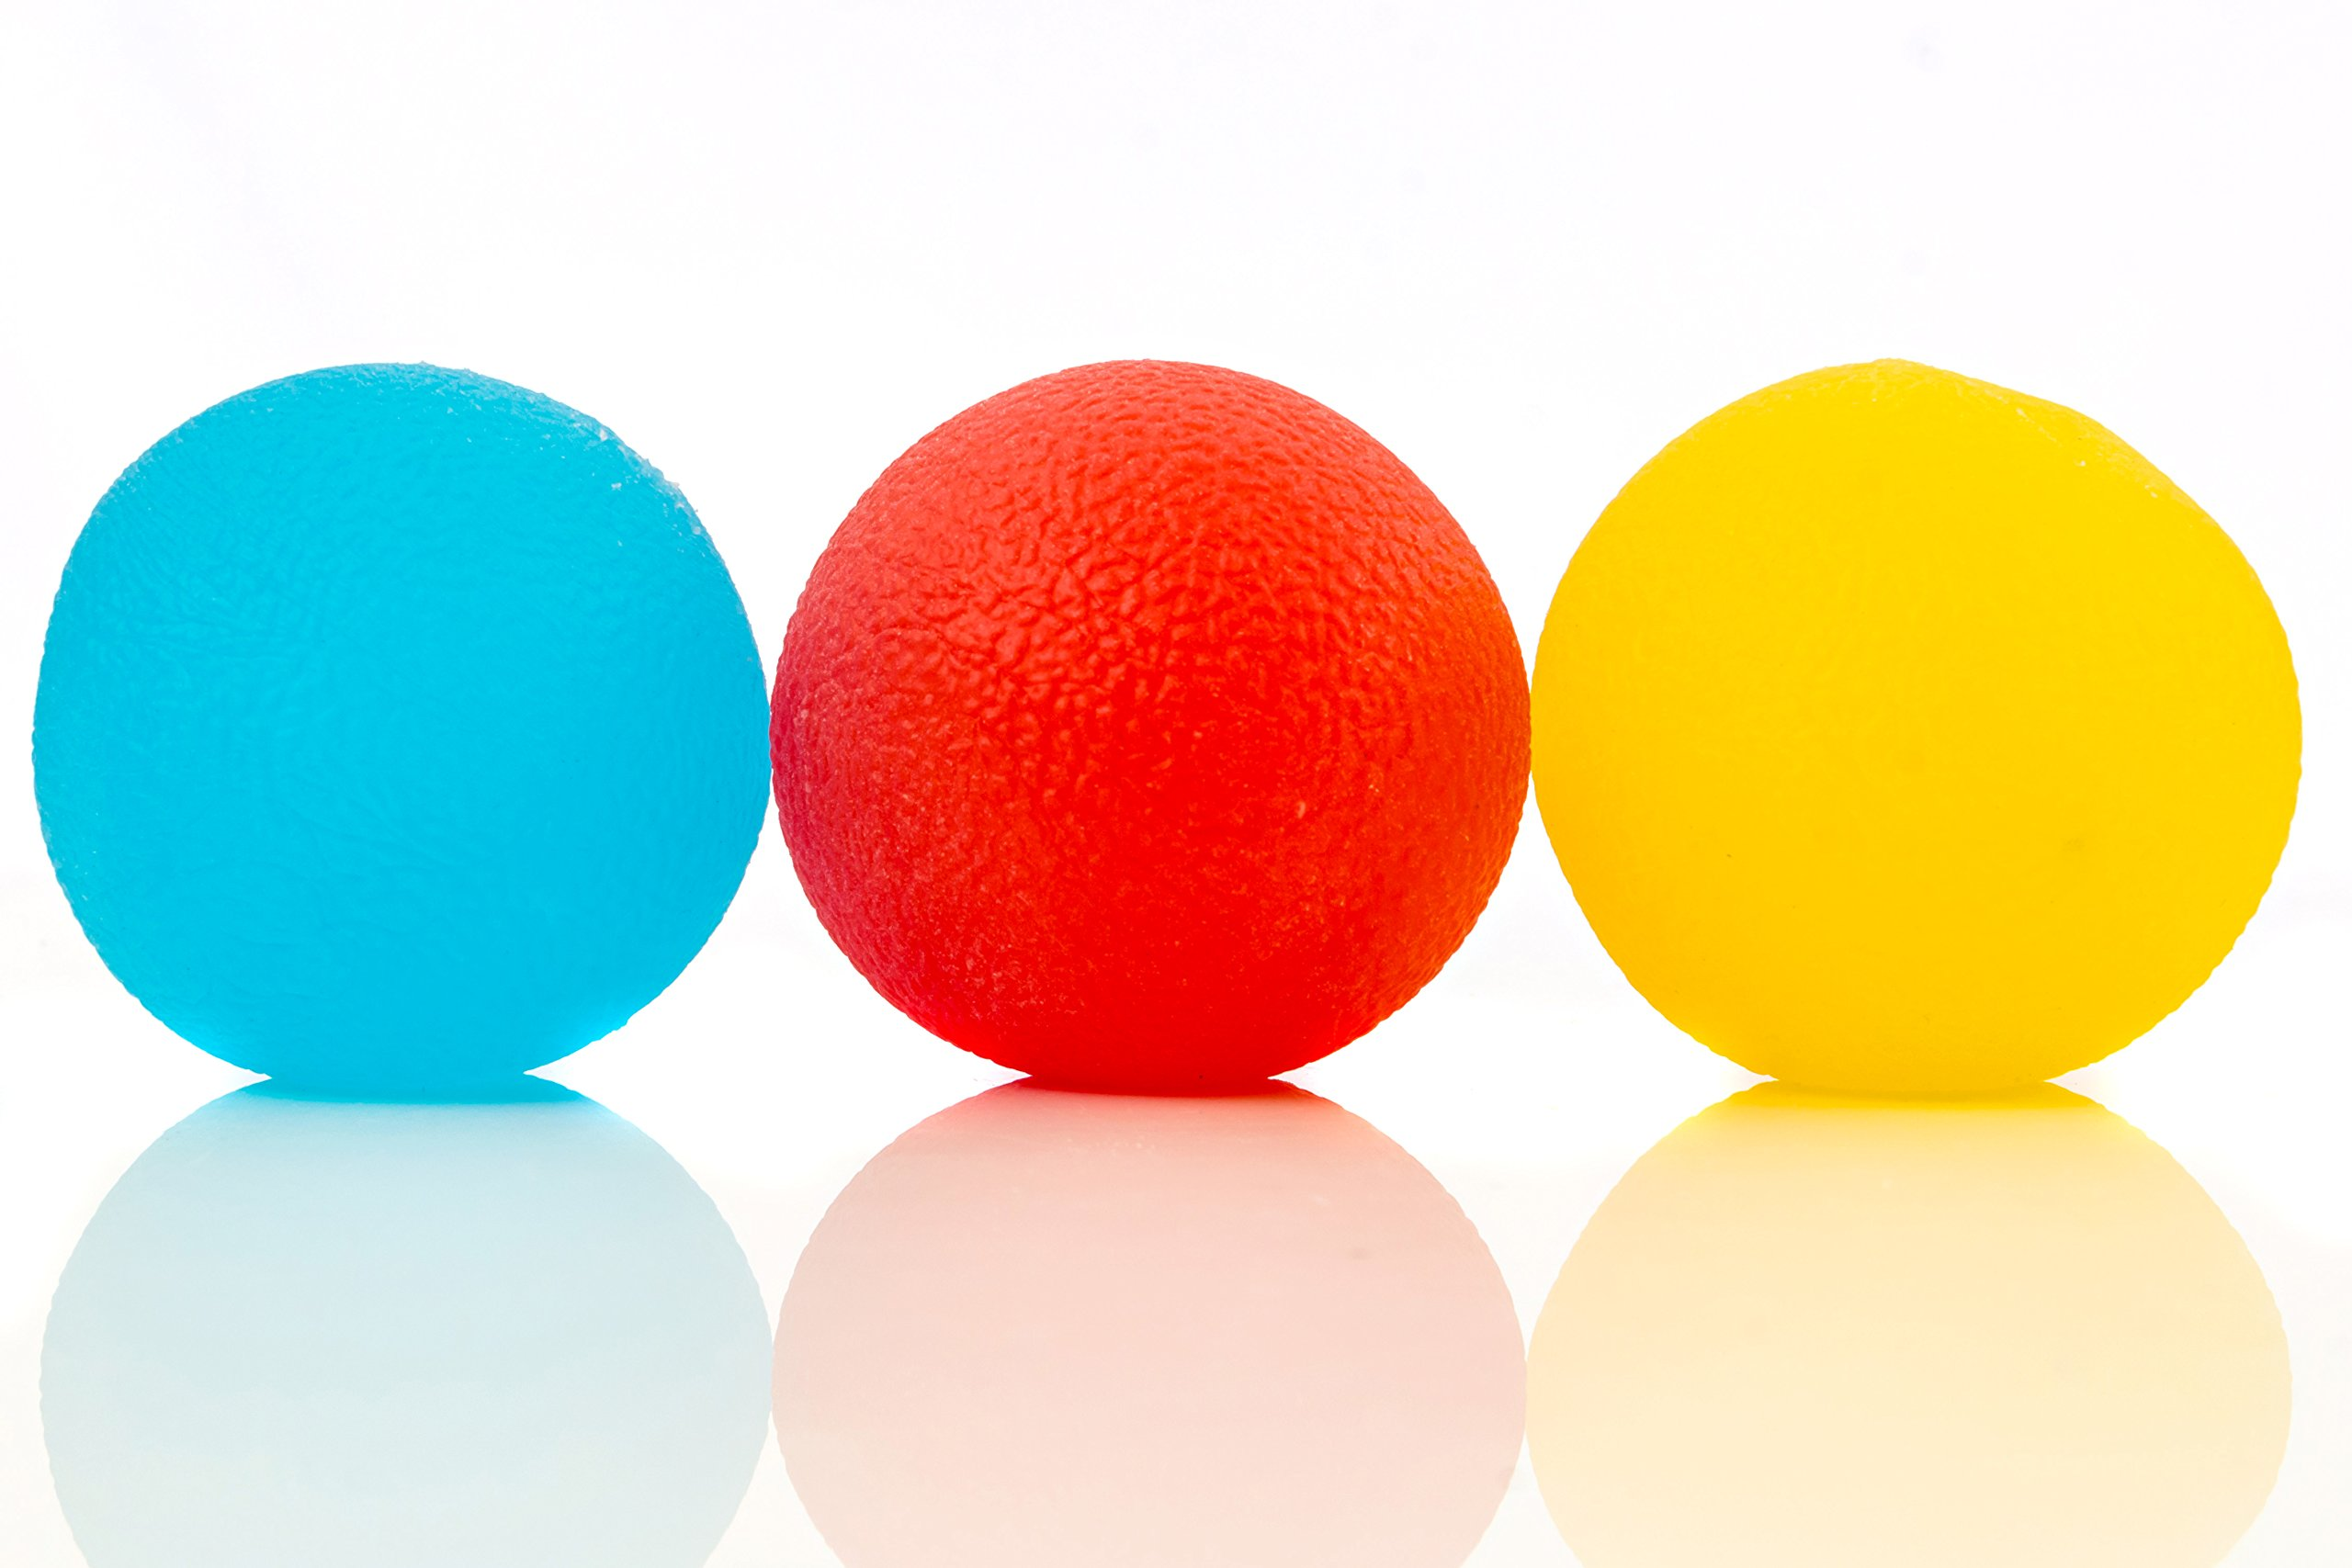 Impresa Products Stress Relief Balls (3-pack) - Tear-Resistant Stress Ball, Non-toxic, BPA/Phthalate/Latex-Free (Colors as Shown)